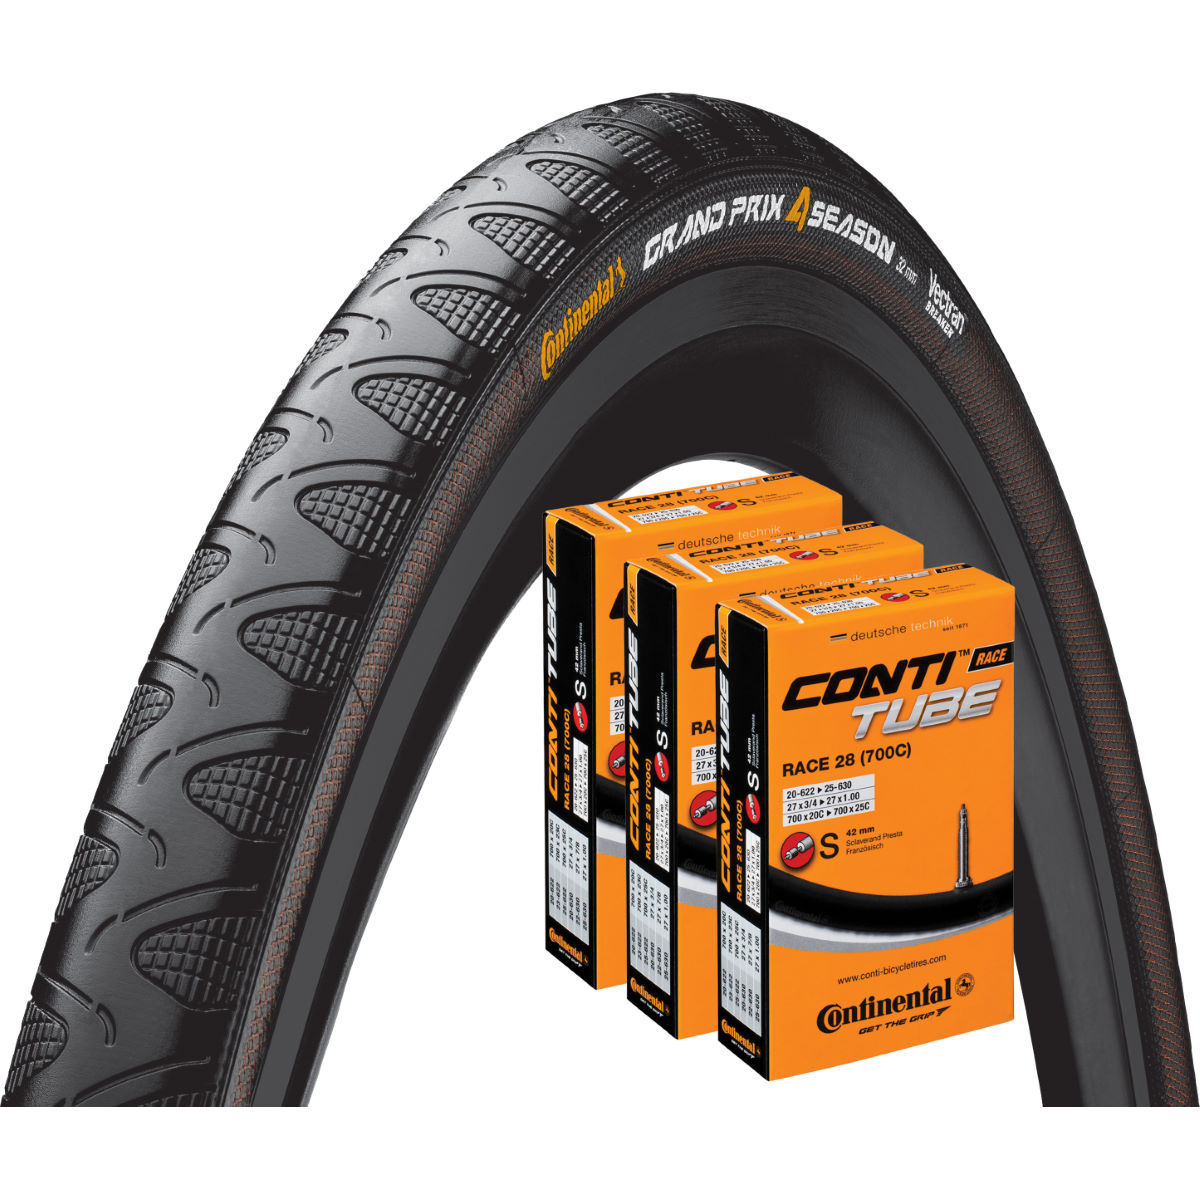 Continental Continental Grand Prix 4 Season 25c Tyre + 3 Tubes   Tyres